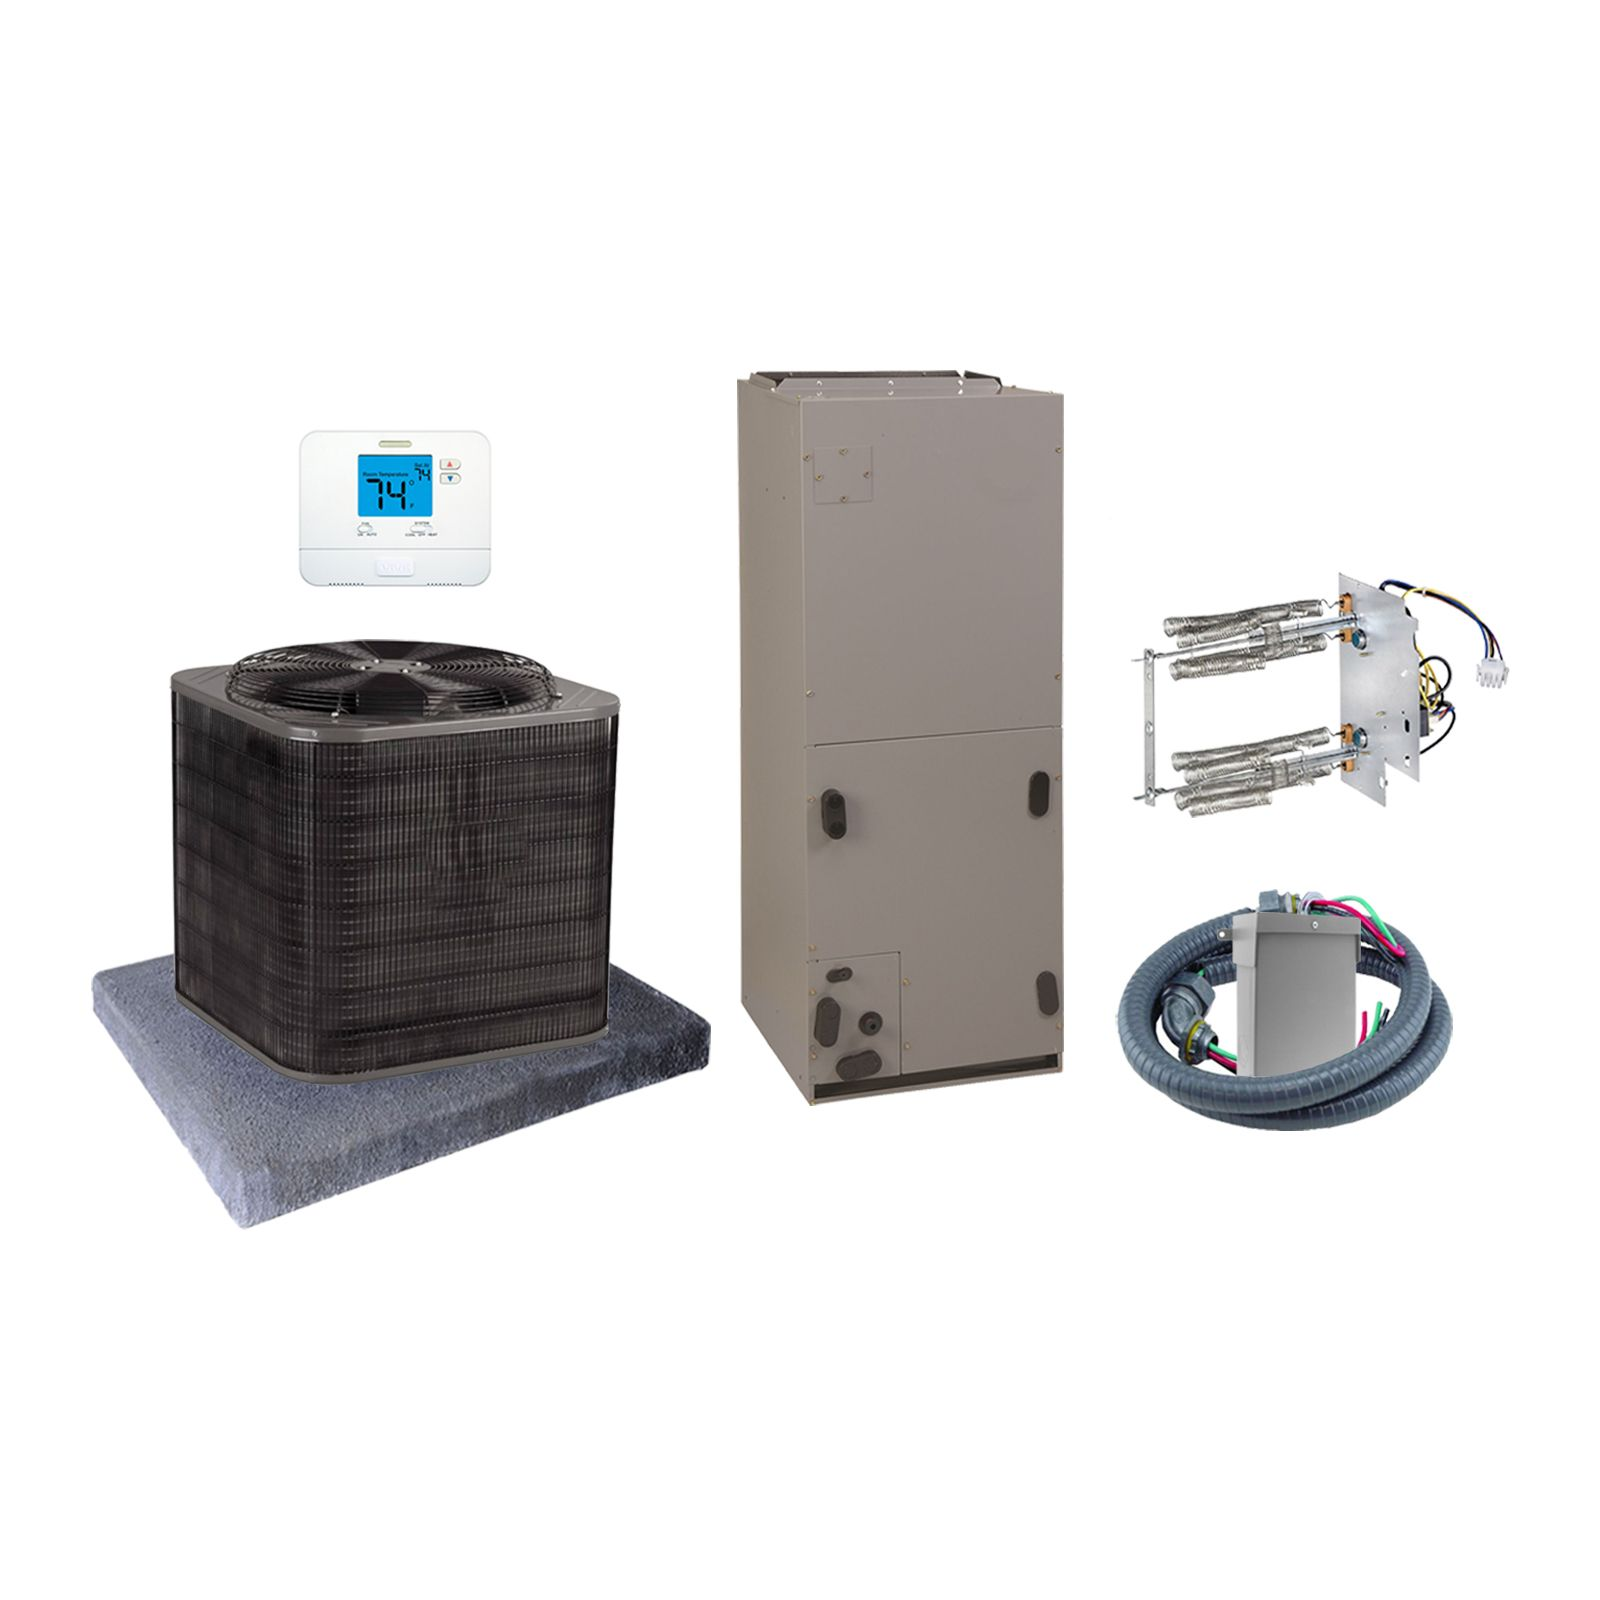 EcoTemp (AHRI 7635697) 2 Ton, 15 SEER/12 EER Horizontal Air Conditioner Split System and Install Kit